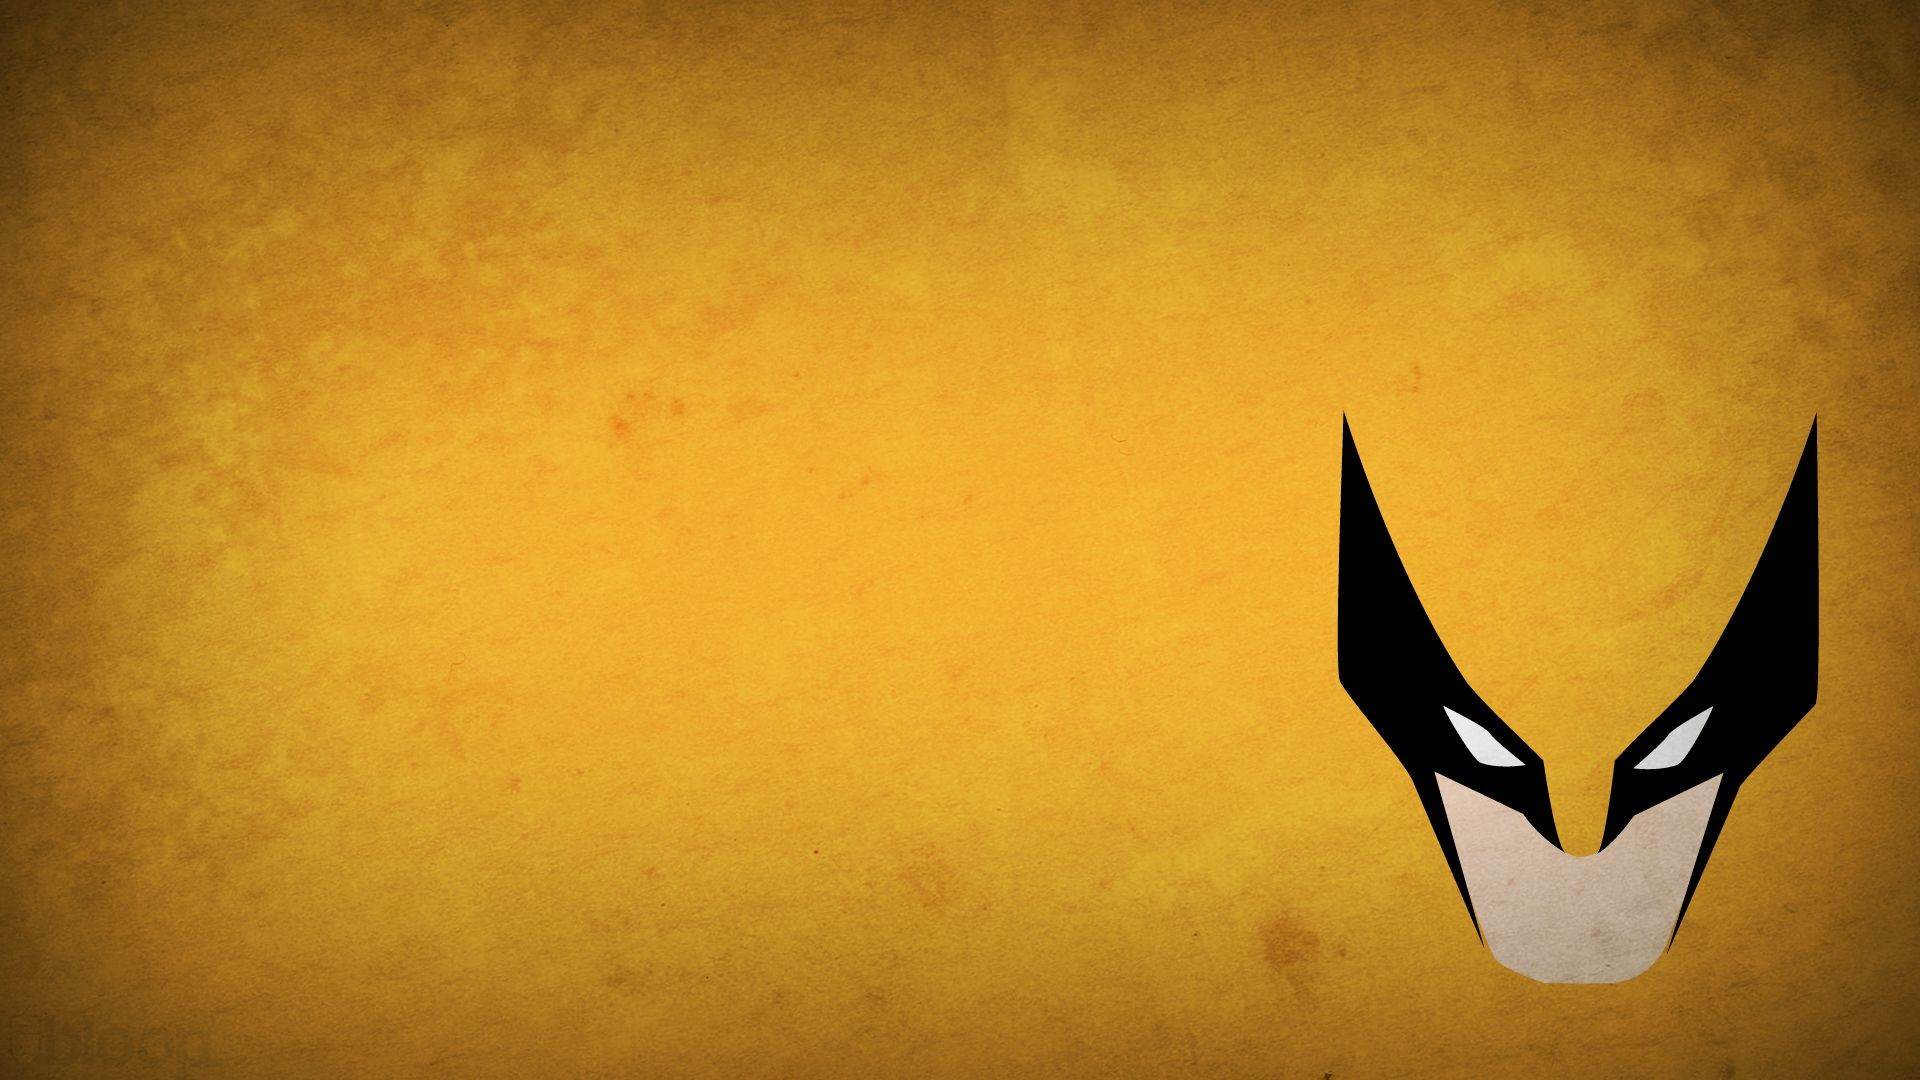 1920x1080 Wolverine Wallpapers Top Quality Cool Wolverine Wallpapers